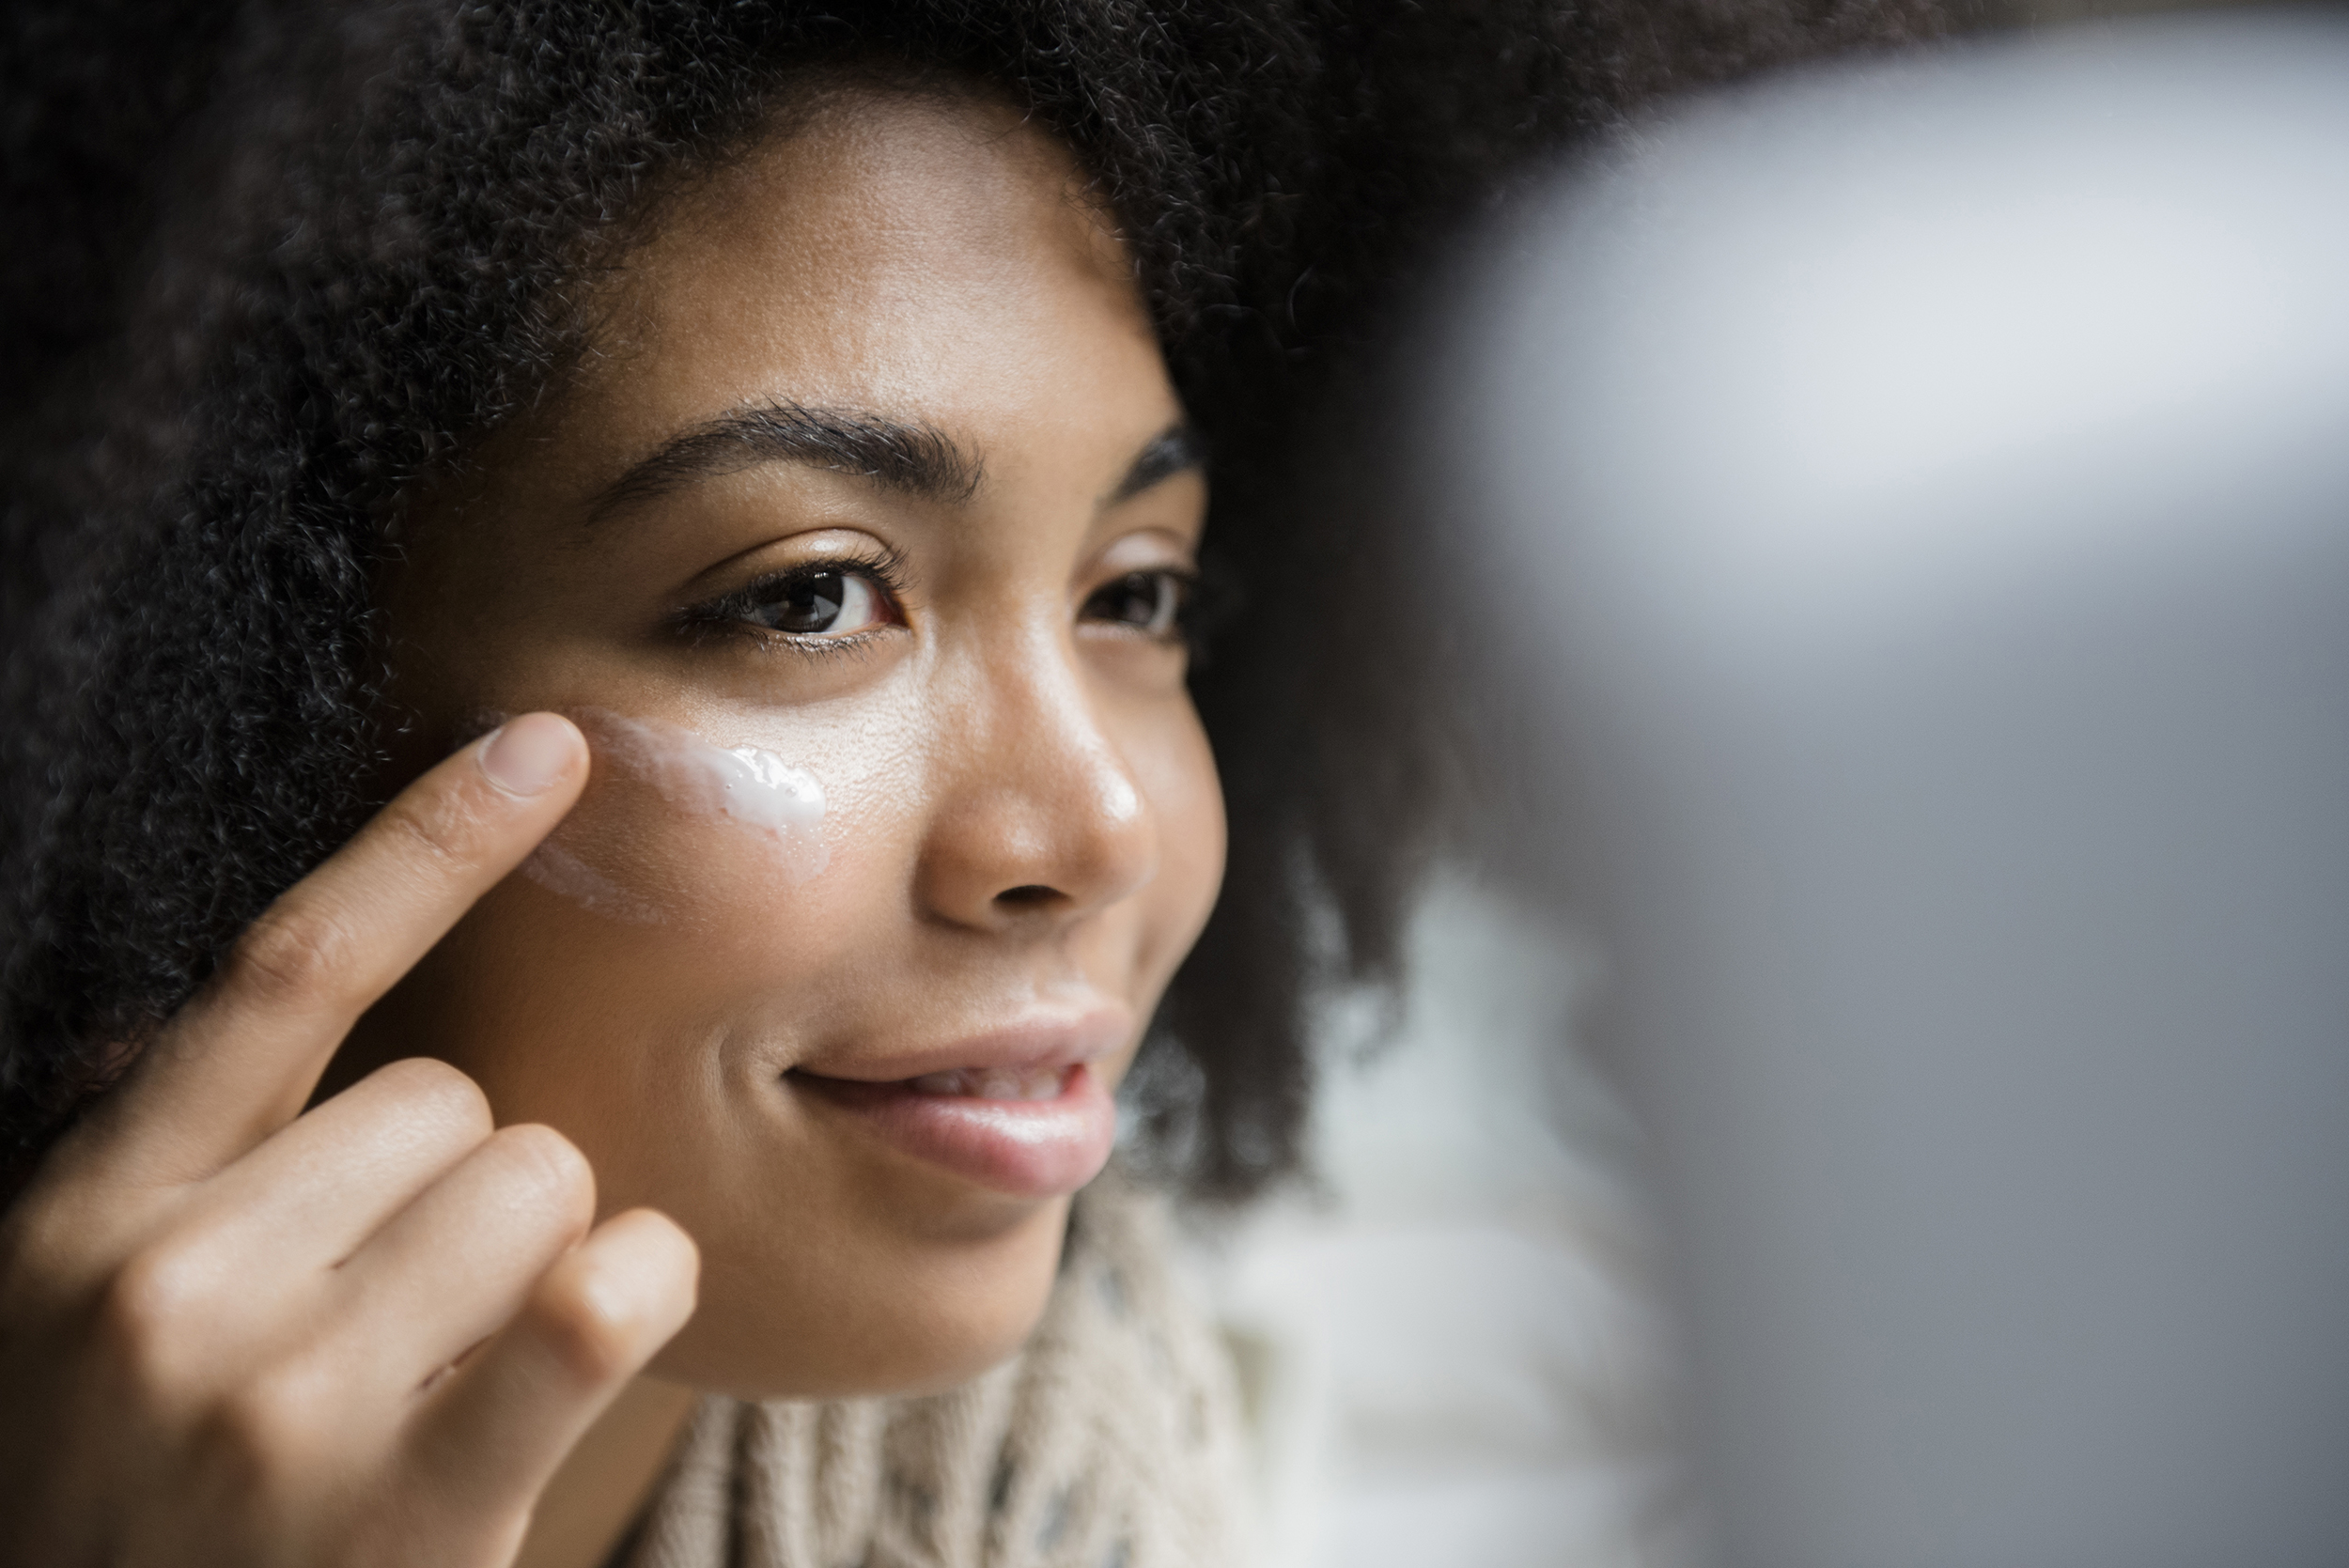 The Top 10 Home Remedies For Acne According To Dermatologists